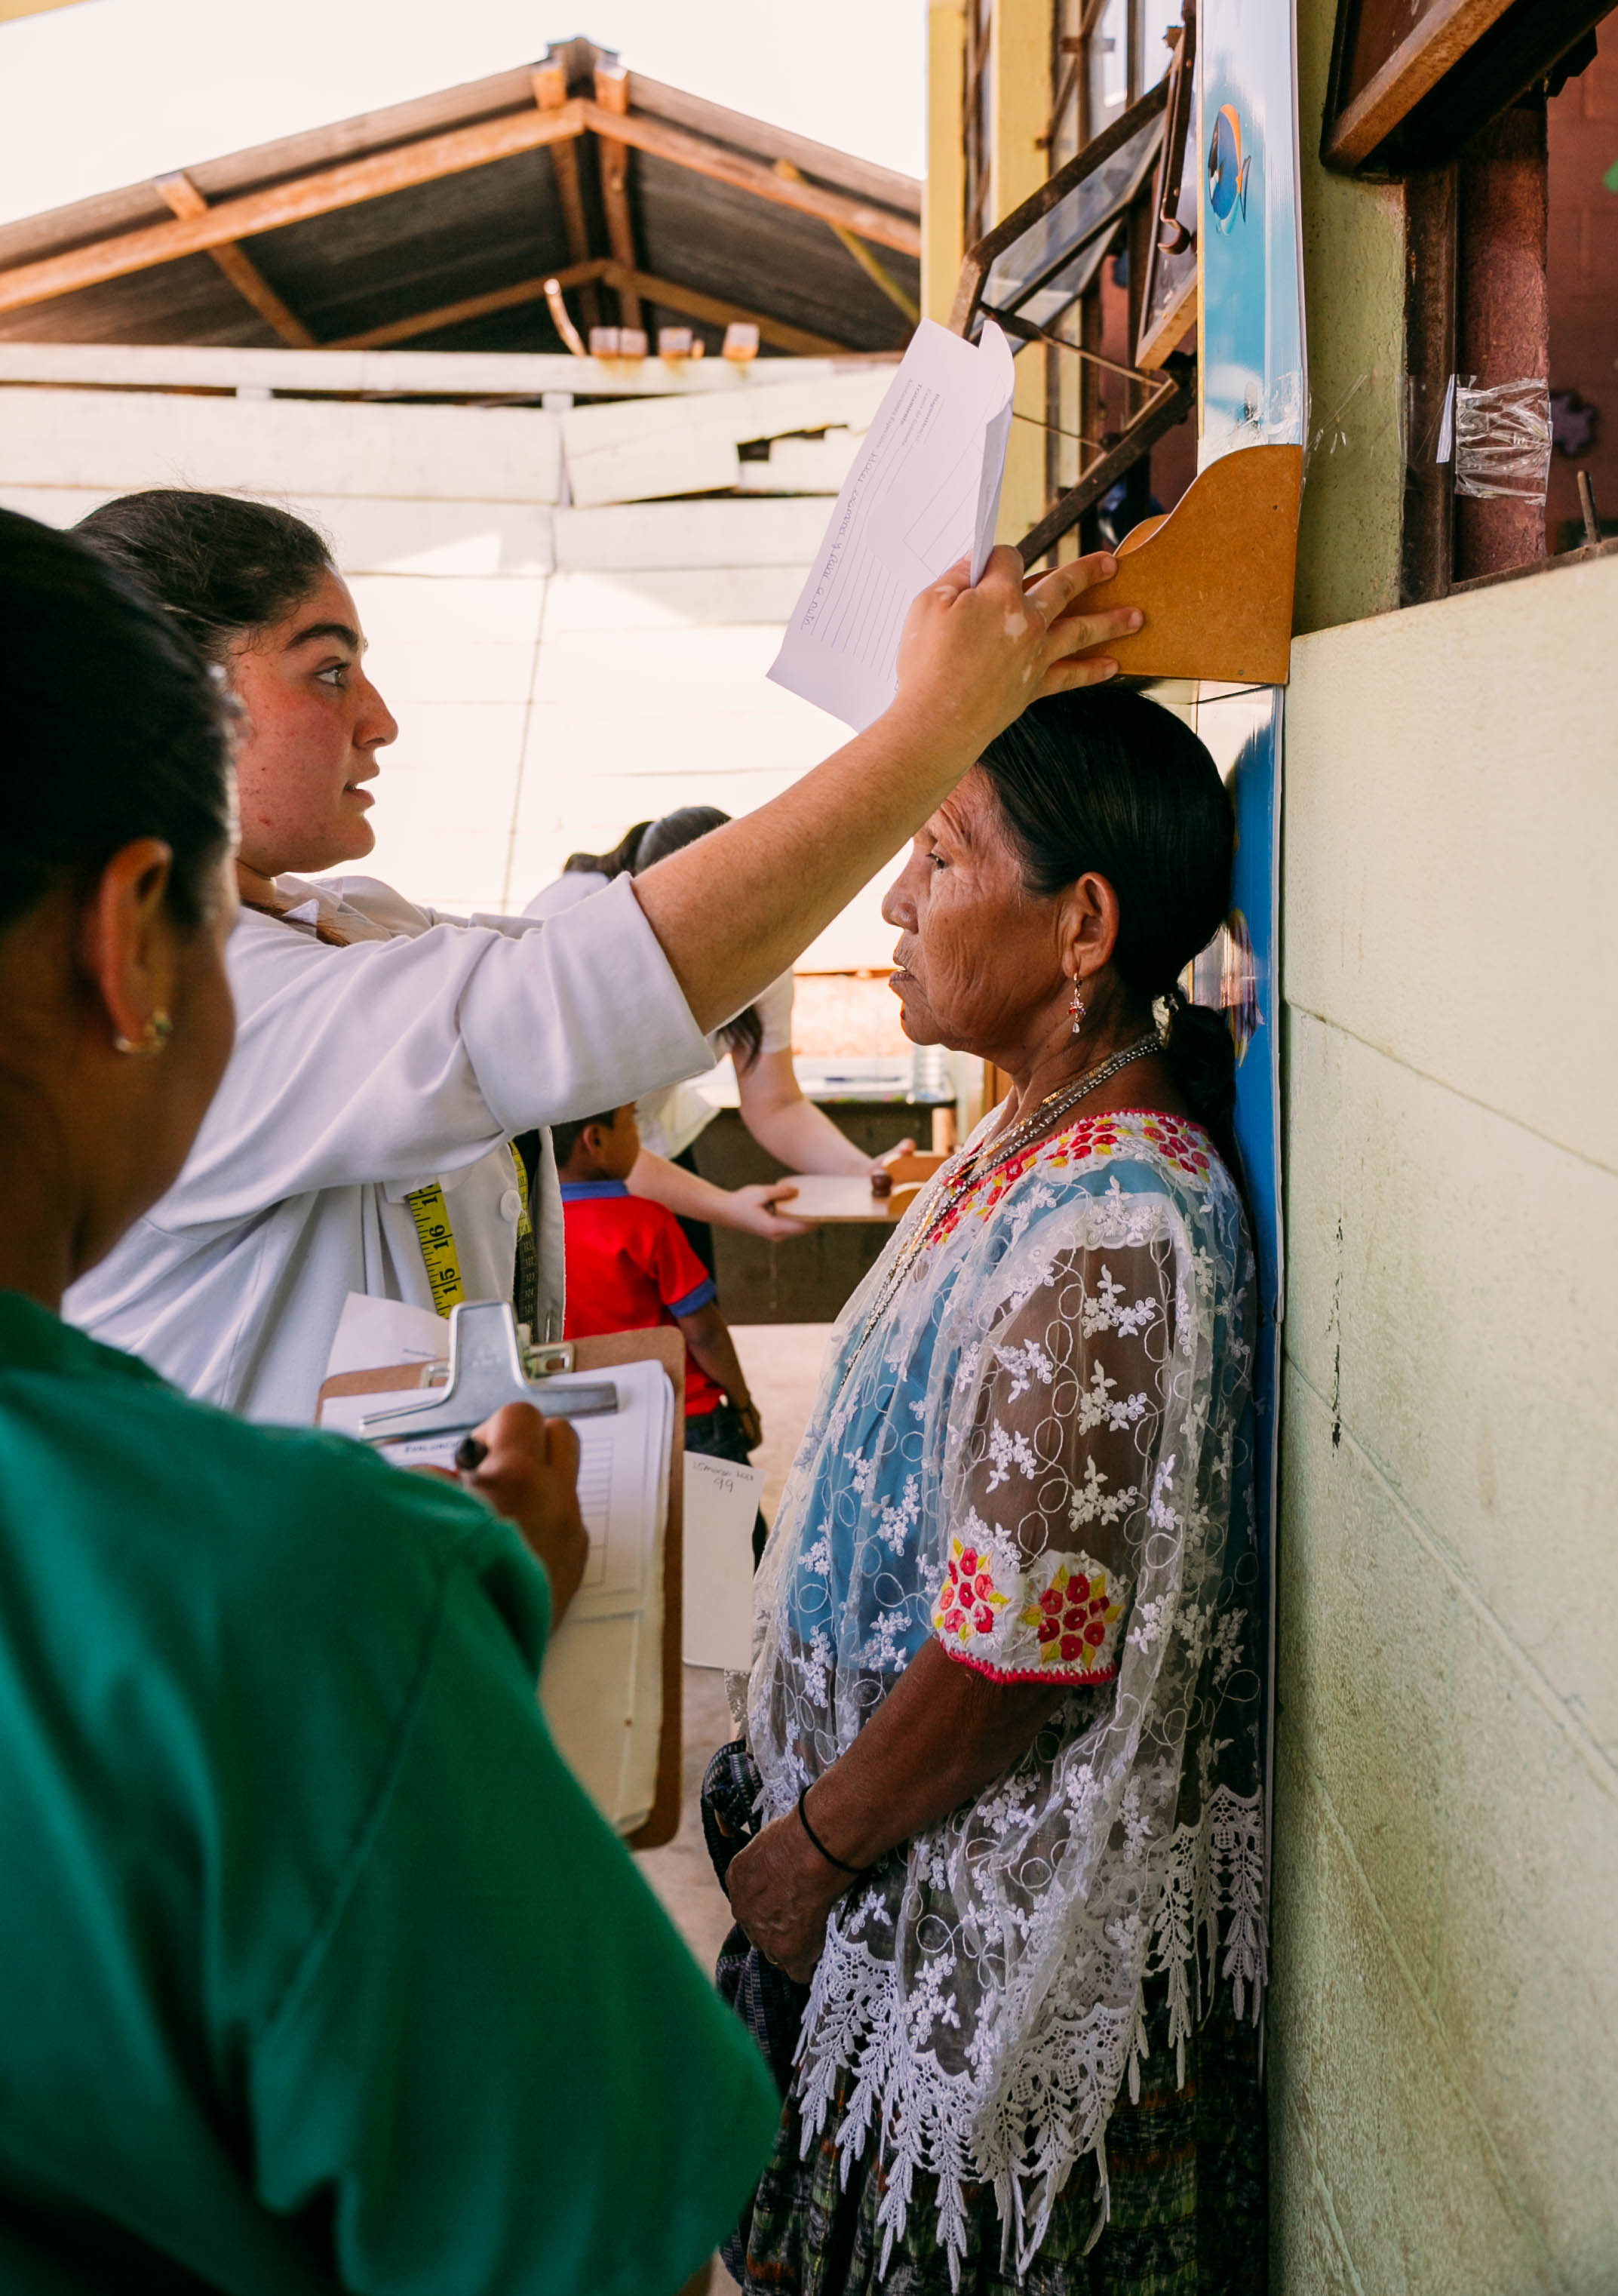 patients were weighed and measured and given nutritional advice as to their daily habits and food intake.